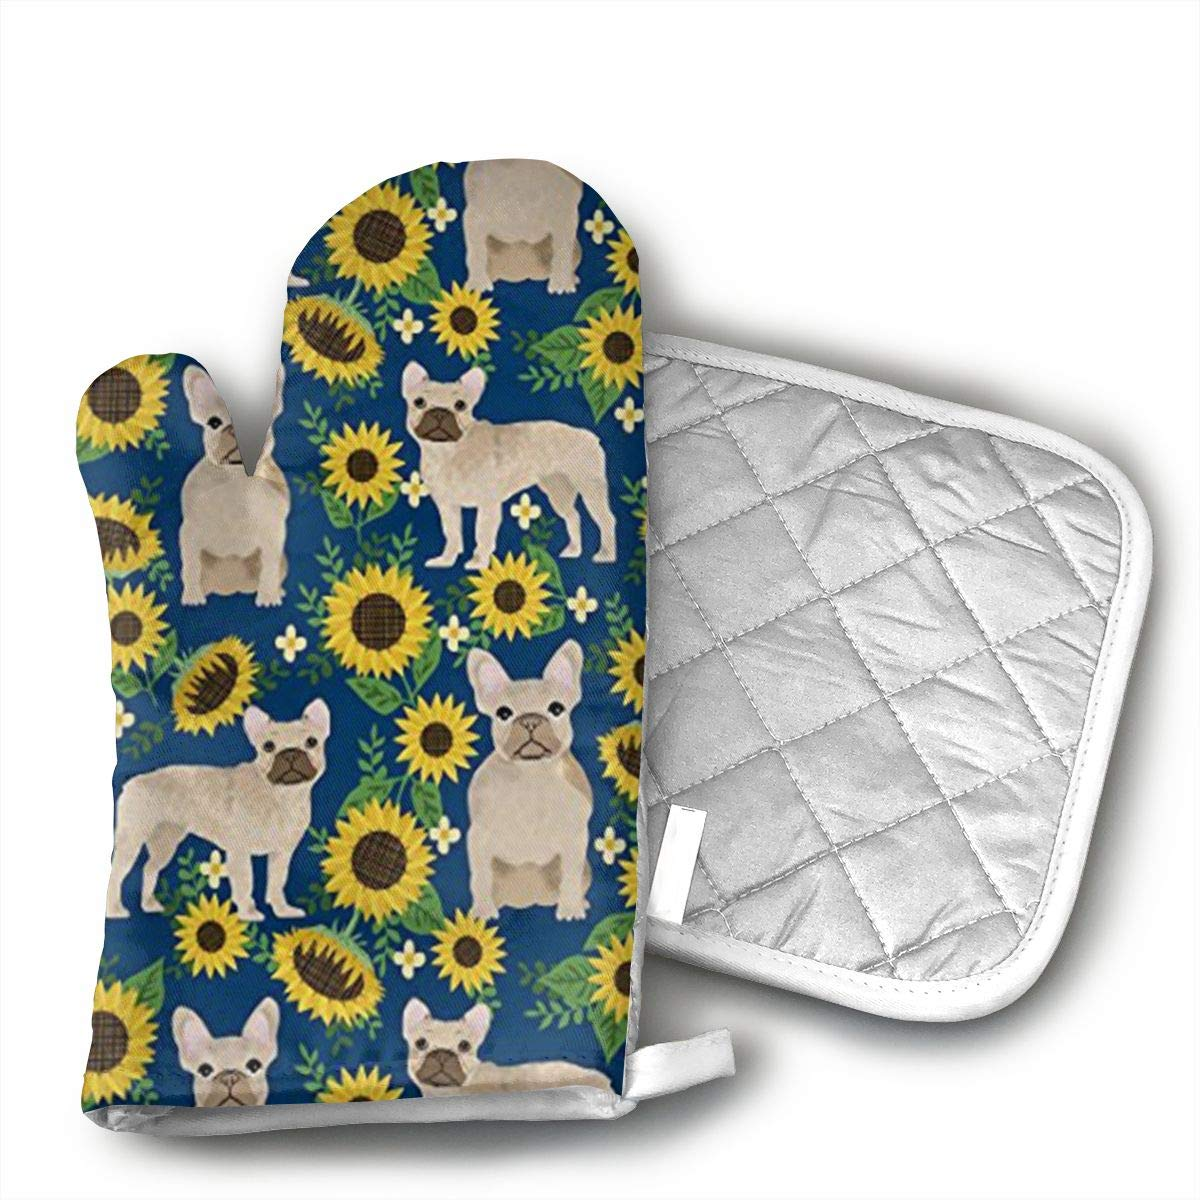 Jiqnajn6 French Bulldog Sunflowers Oven Mitts,Heat Resistant Oven Gloves, Safe Cooking Baking, Grilling, Barbecue, Machine Washable,Pot Holders.